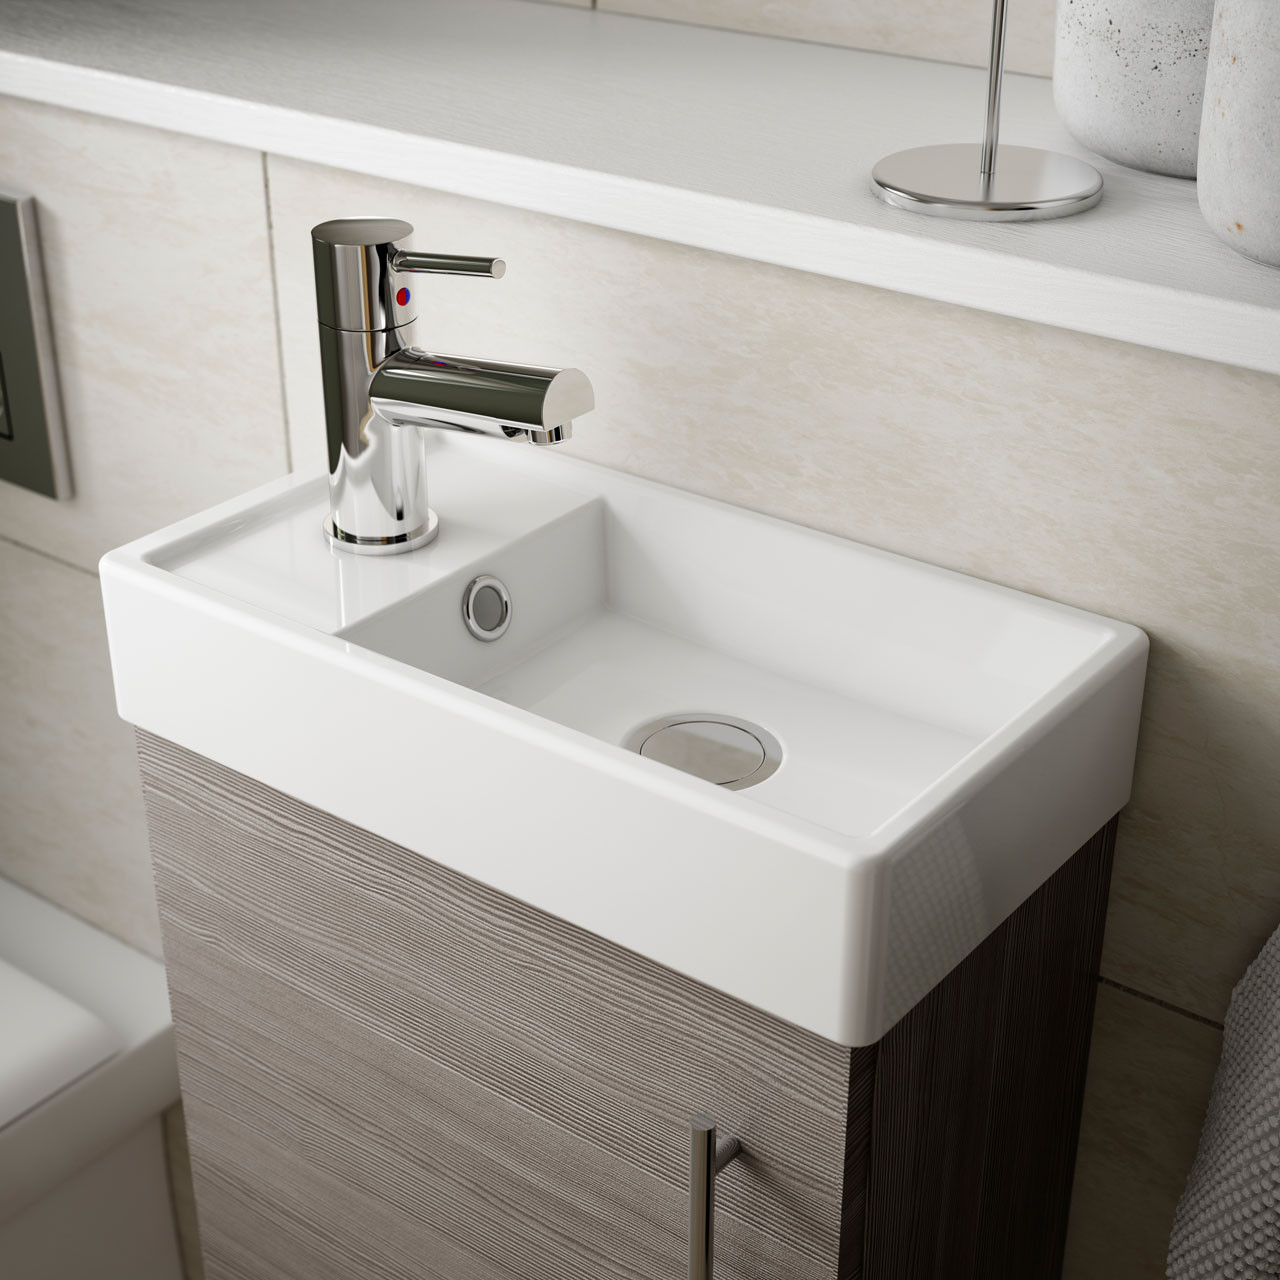 Nuie Valut Natural Oak 400mm Wall Hung Single Door Vanity Unit and Compact Basin - MIN011